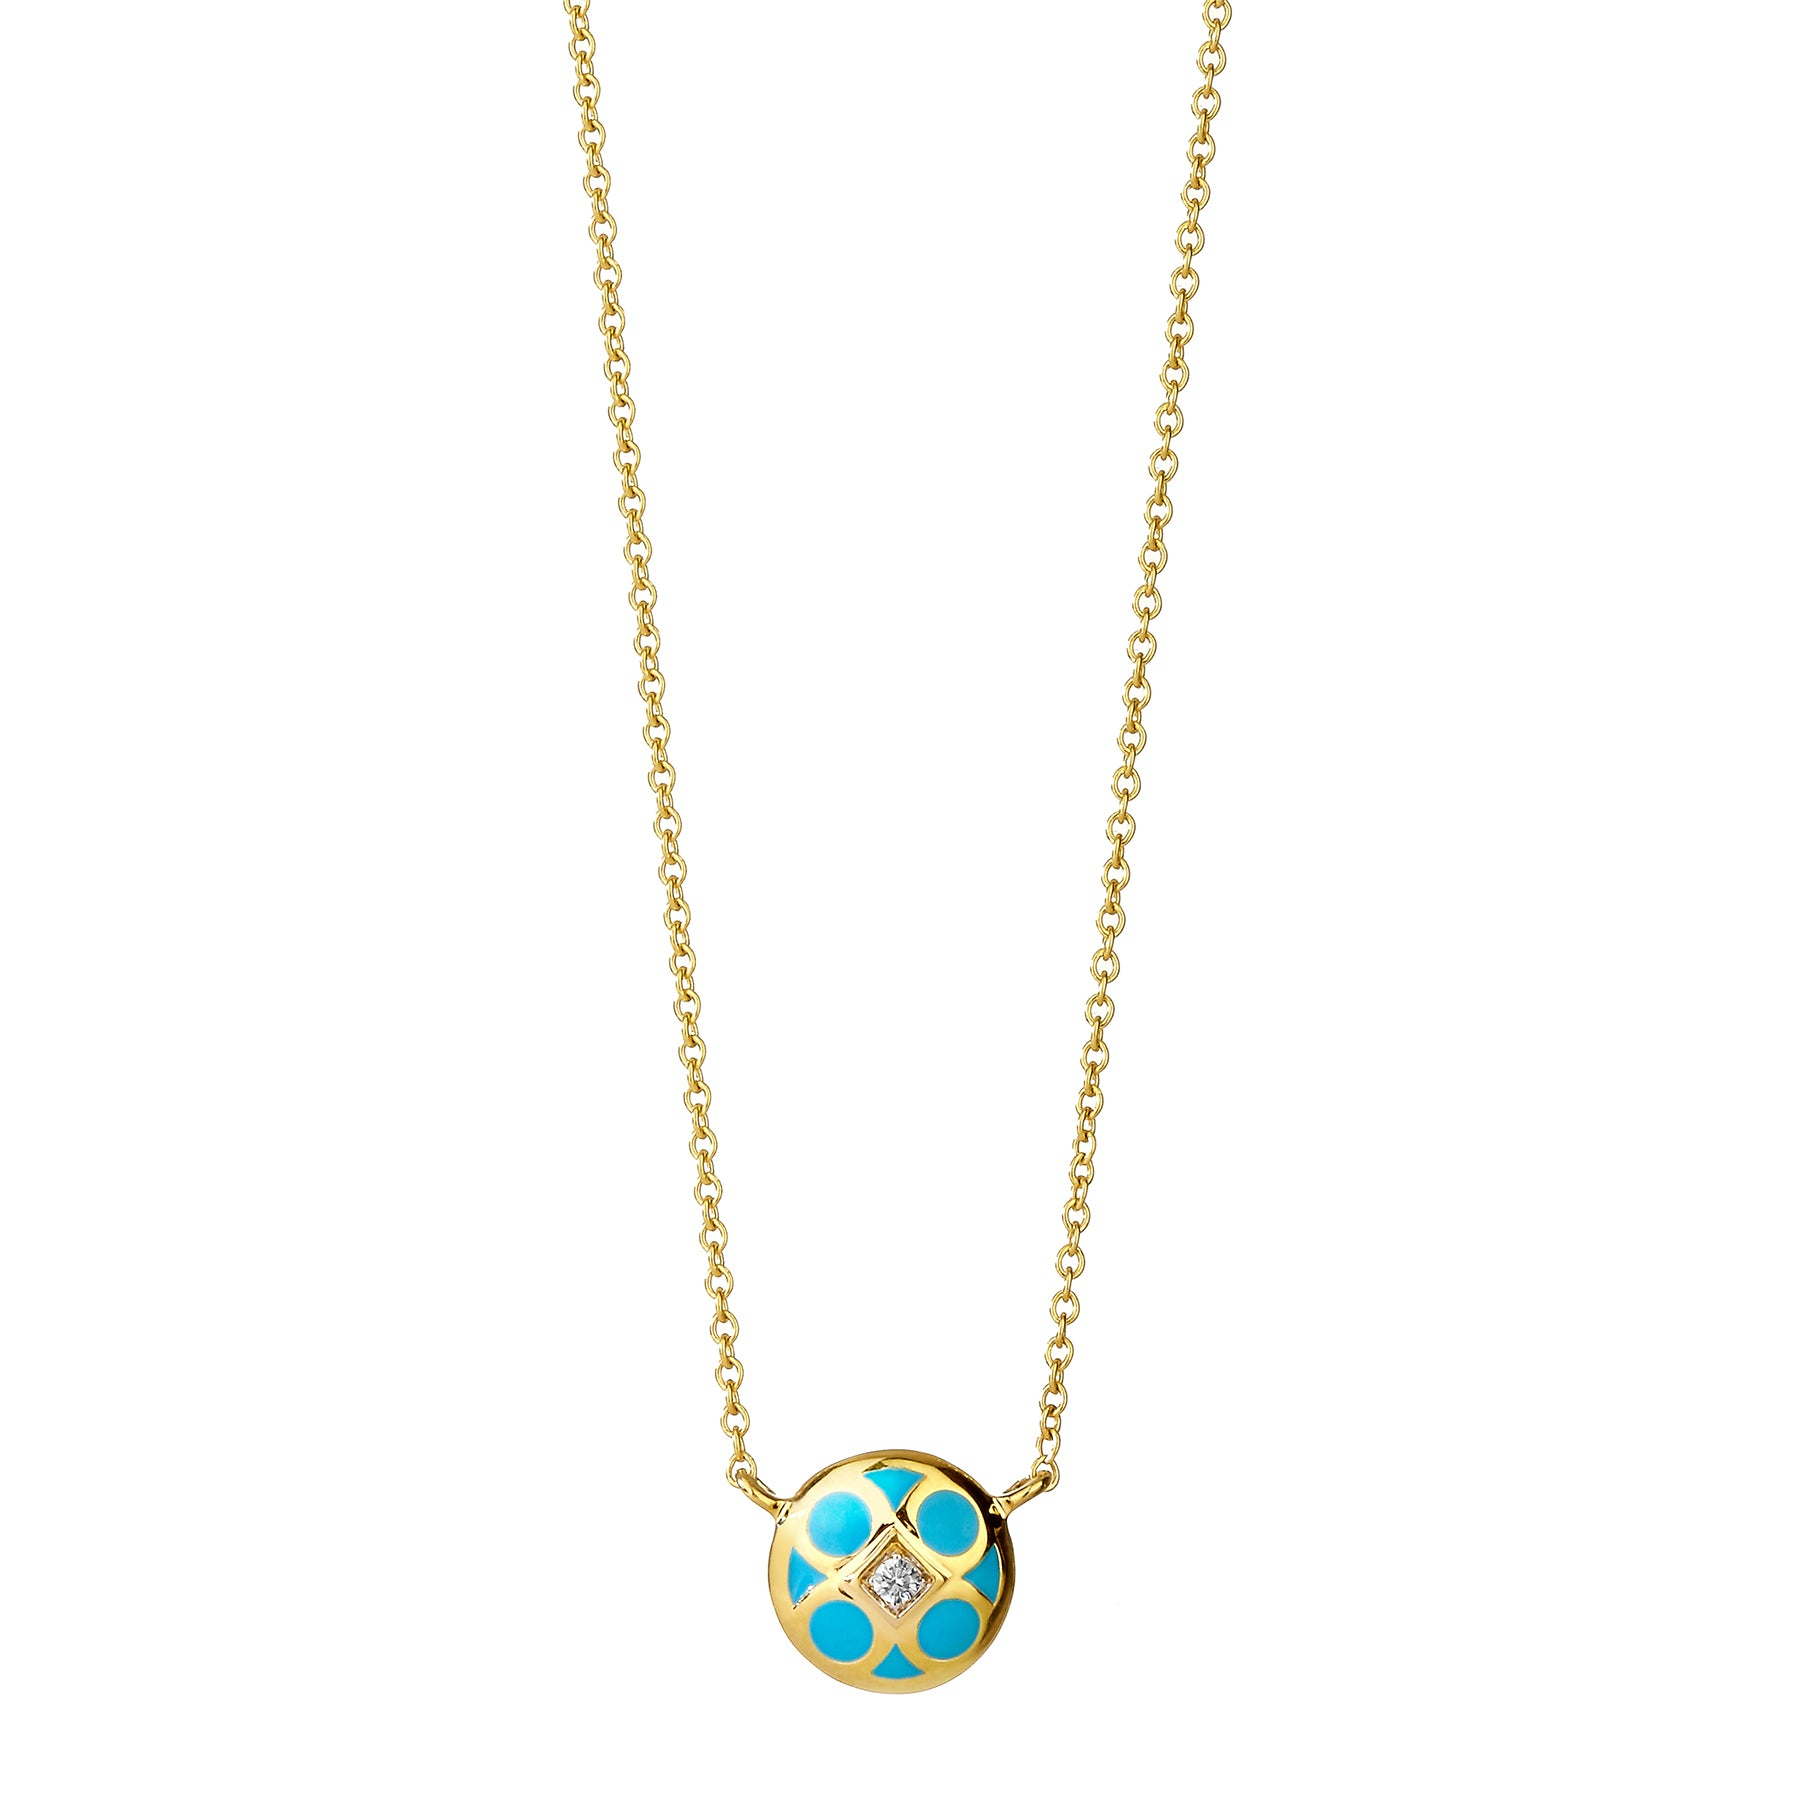 Reversible White and Turquoise Enamel Necklace